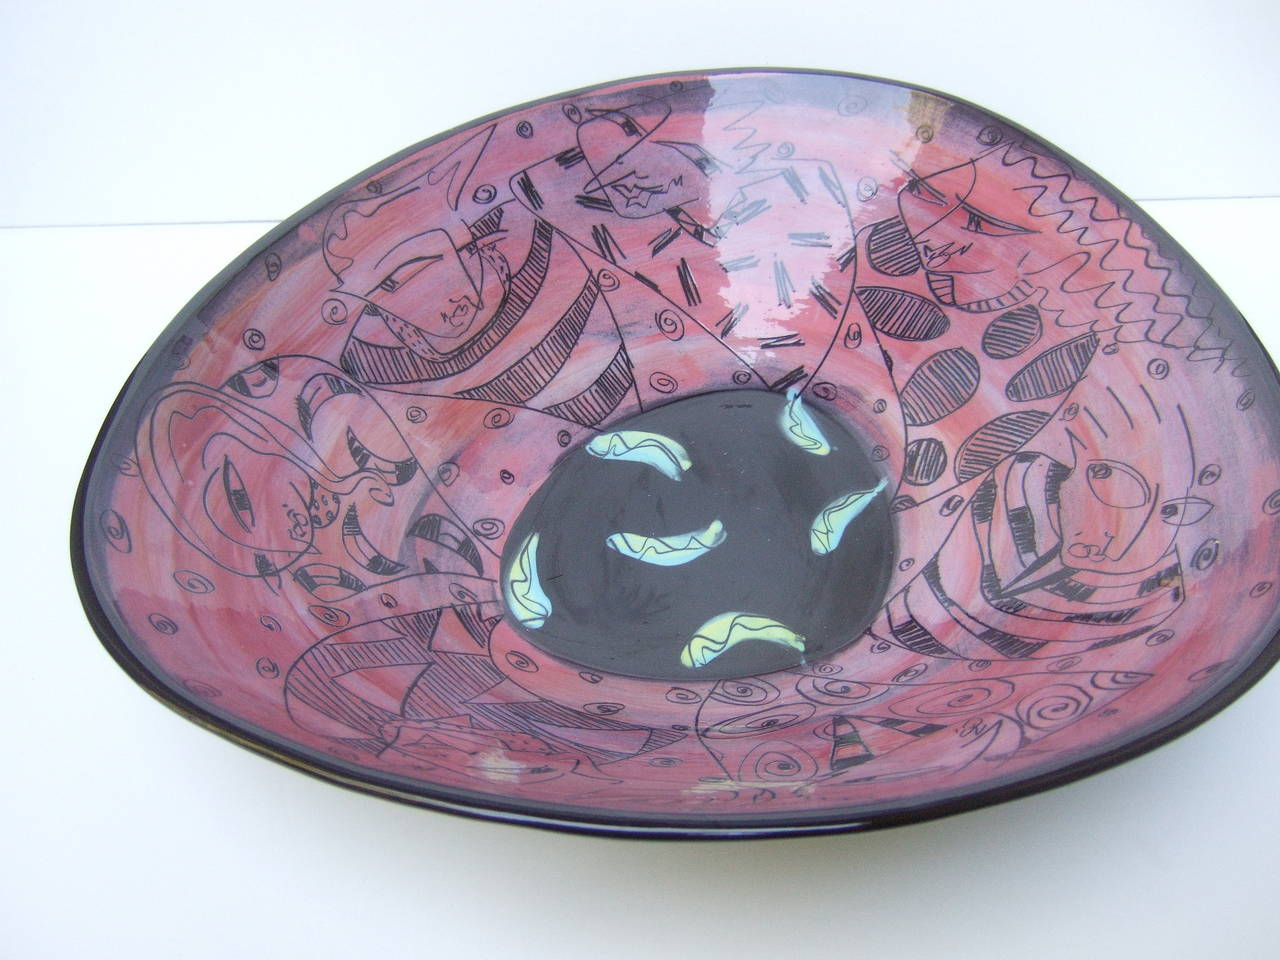 Artisan ceramic illustrated bowl designed by Odell c 1995